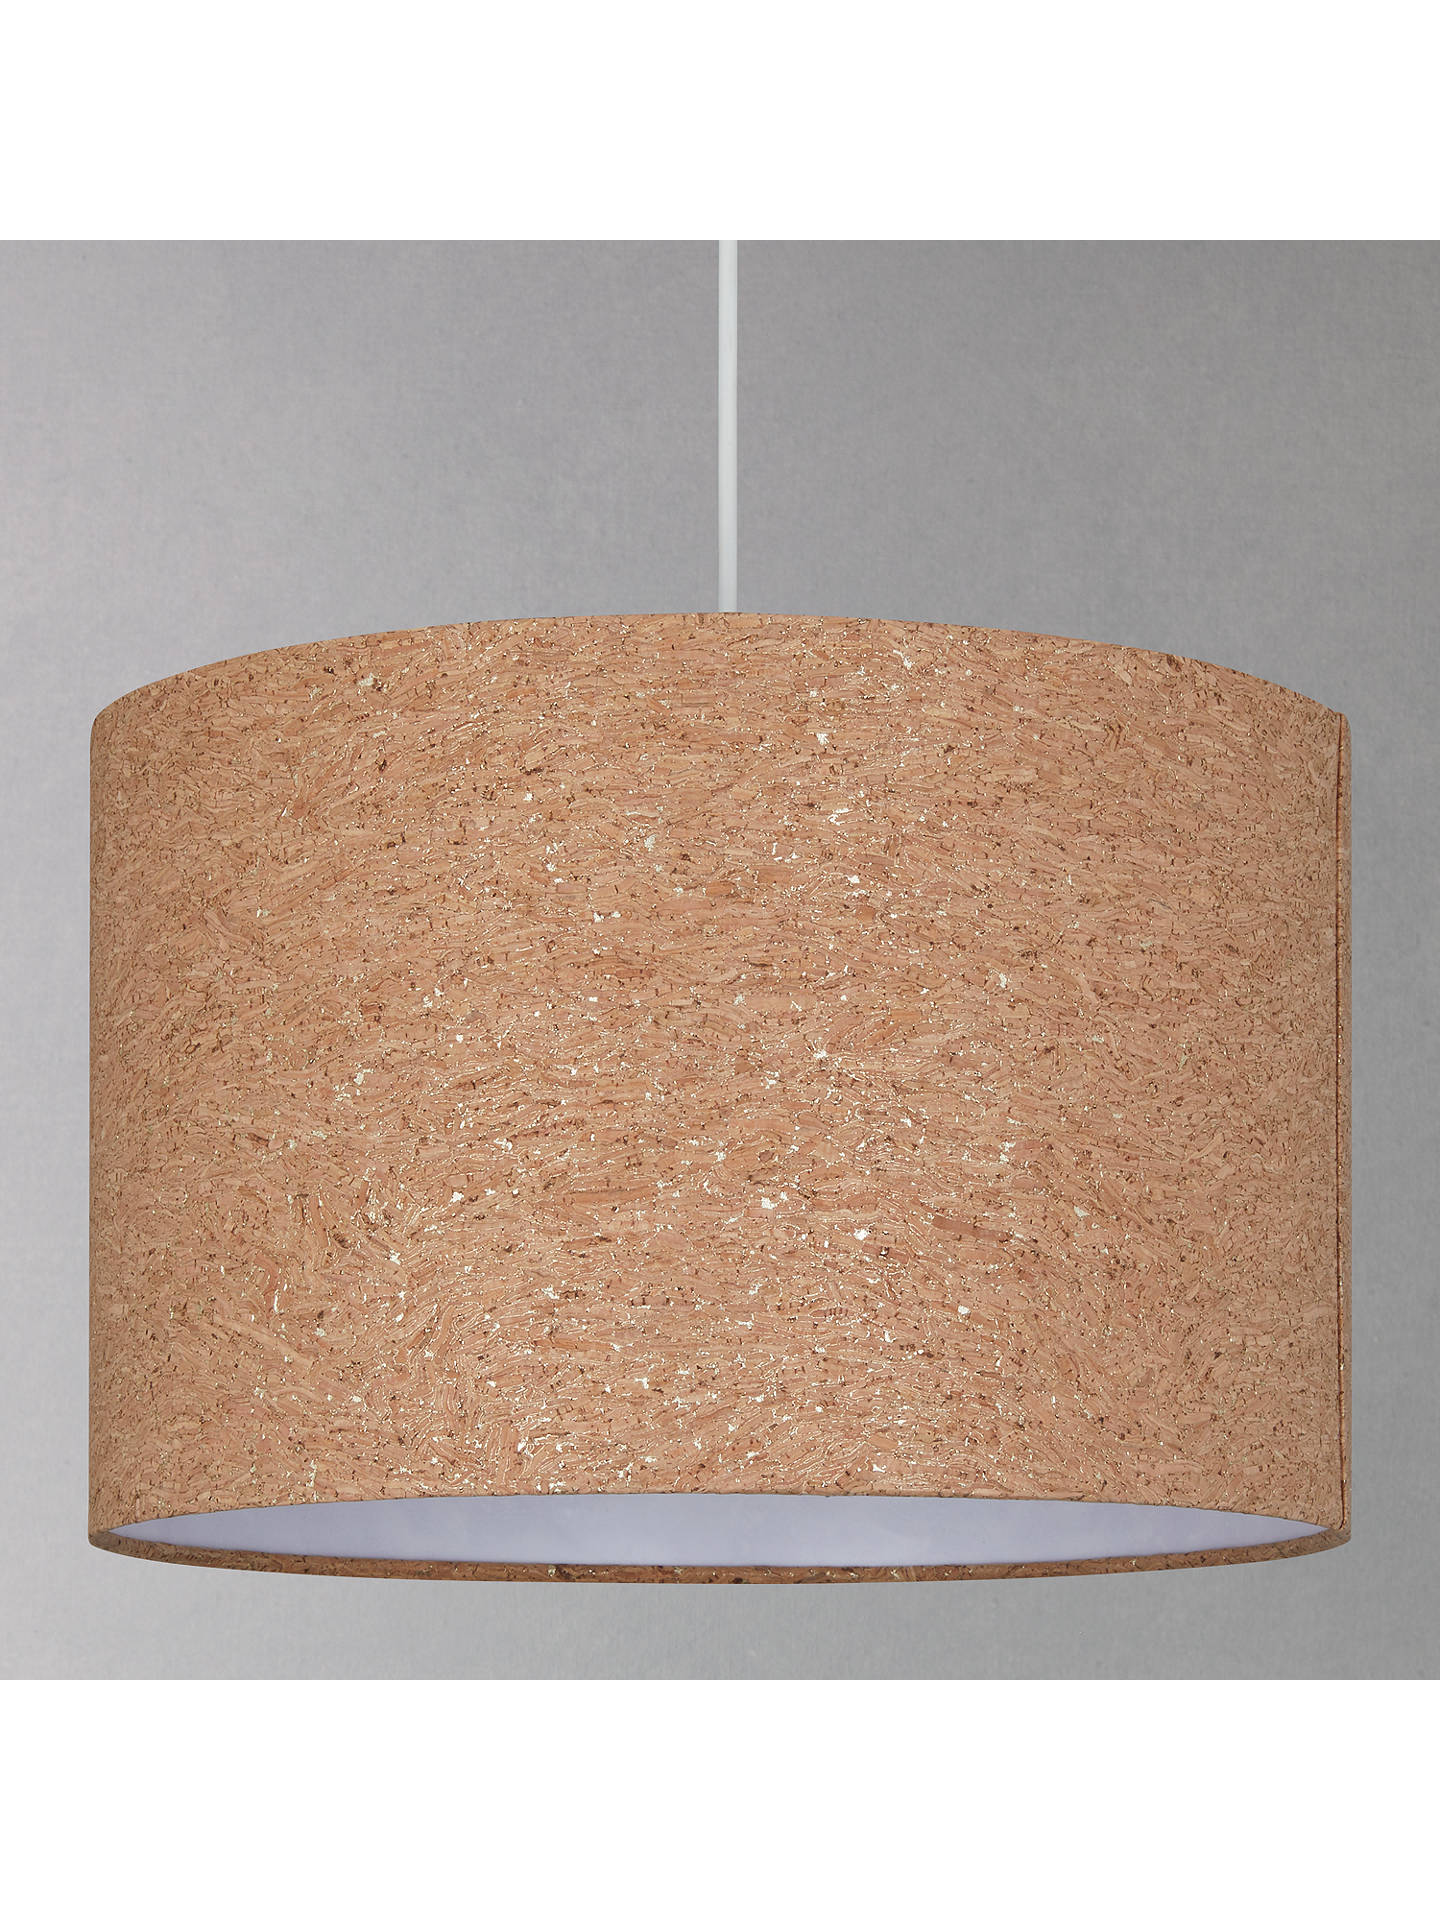 BuyHouse by John Lewis Chloe Cork Flecked Lampshade, Natural, Dia.25cm Online at johnlewis.com